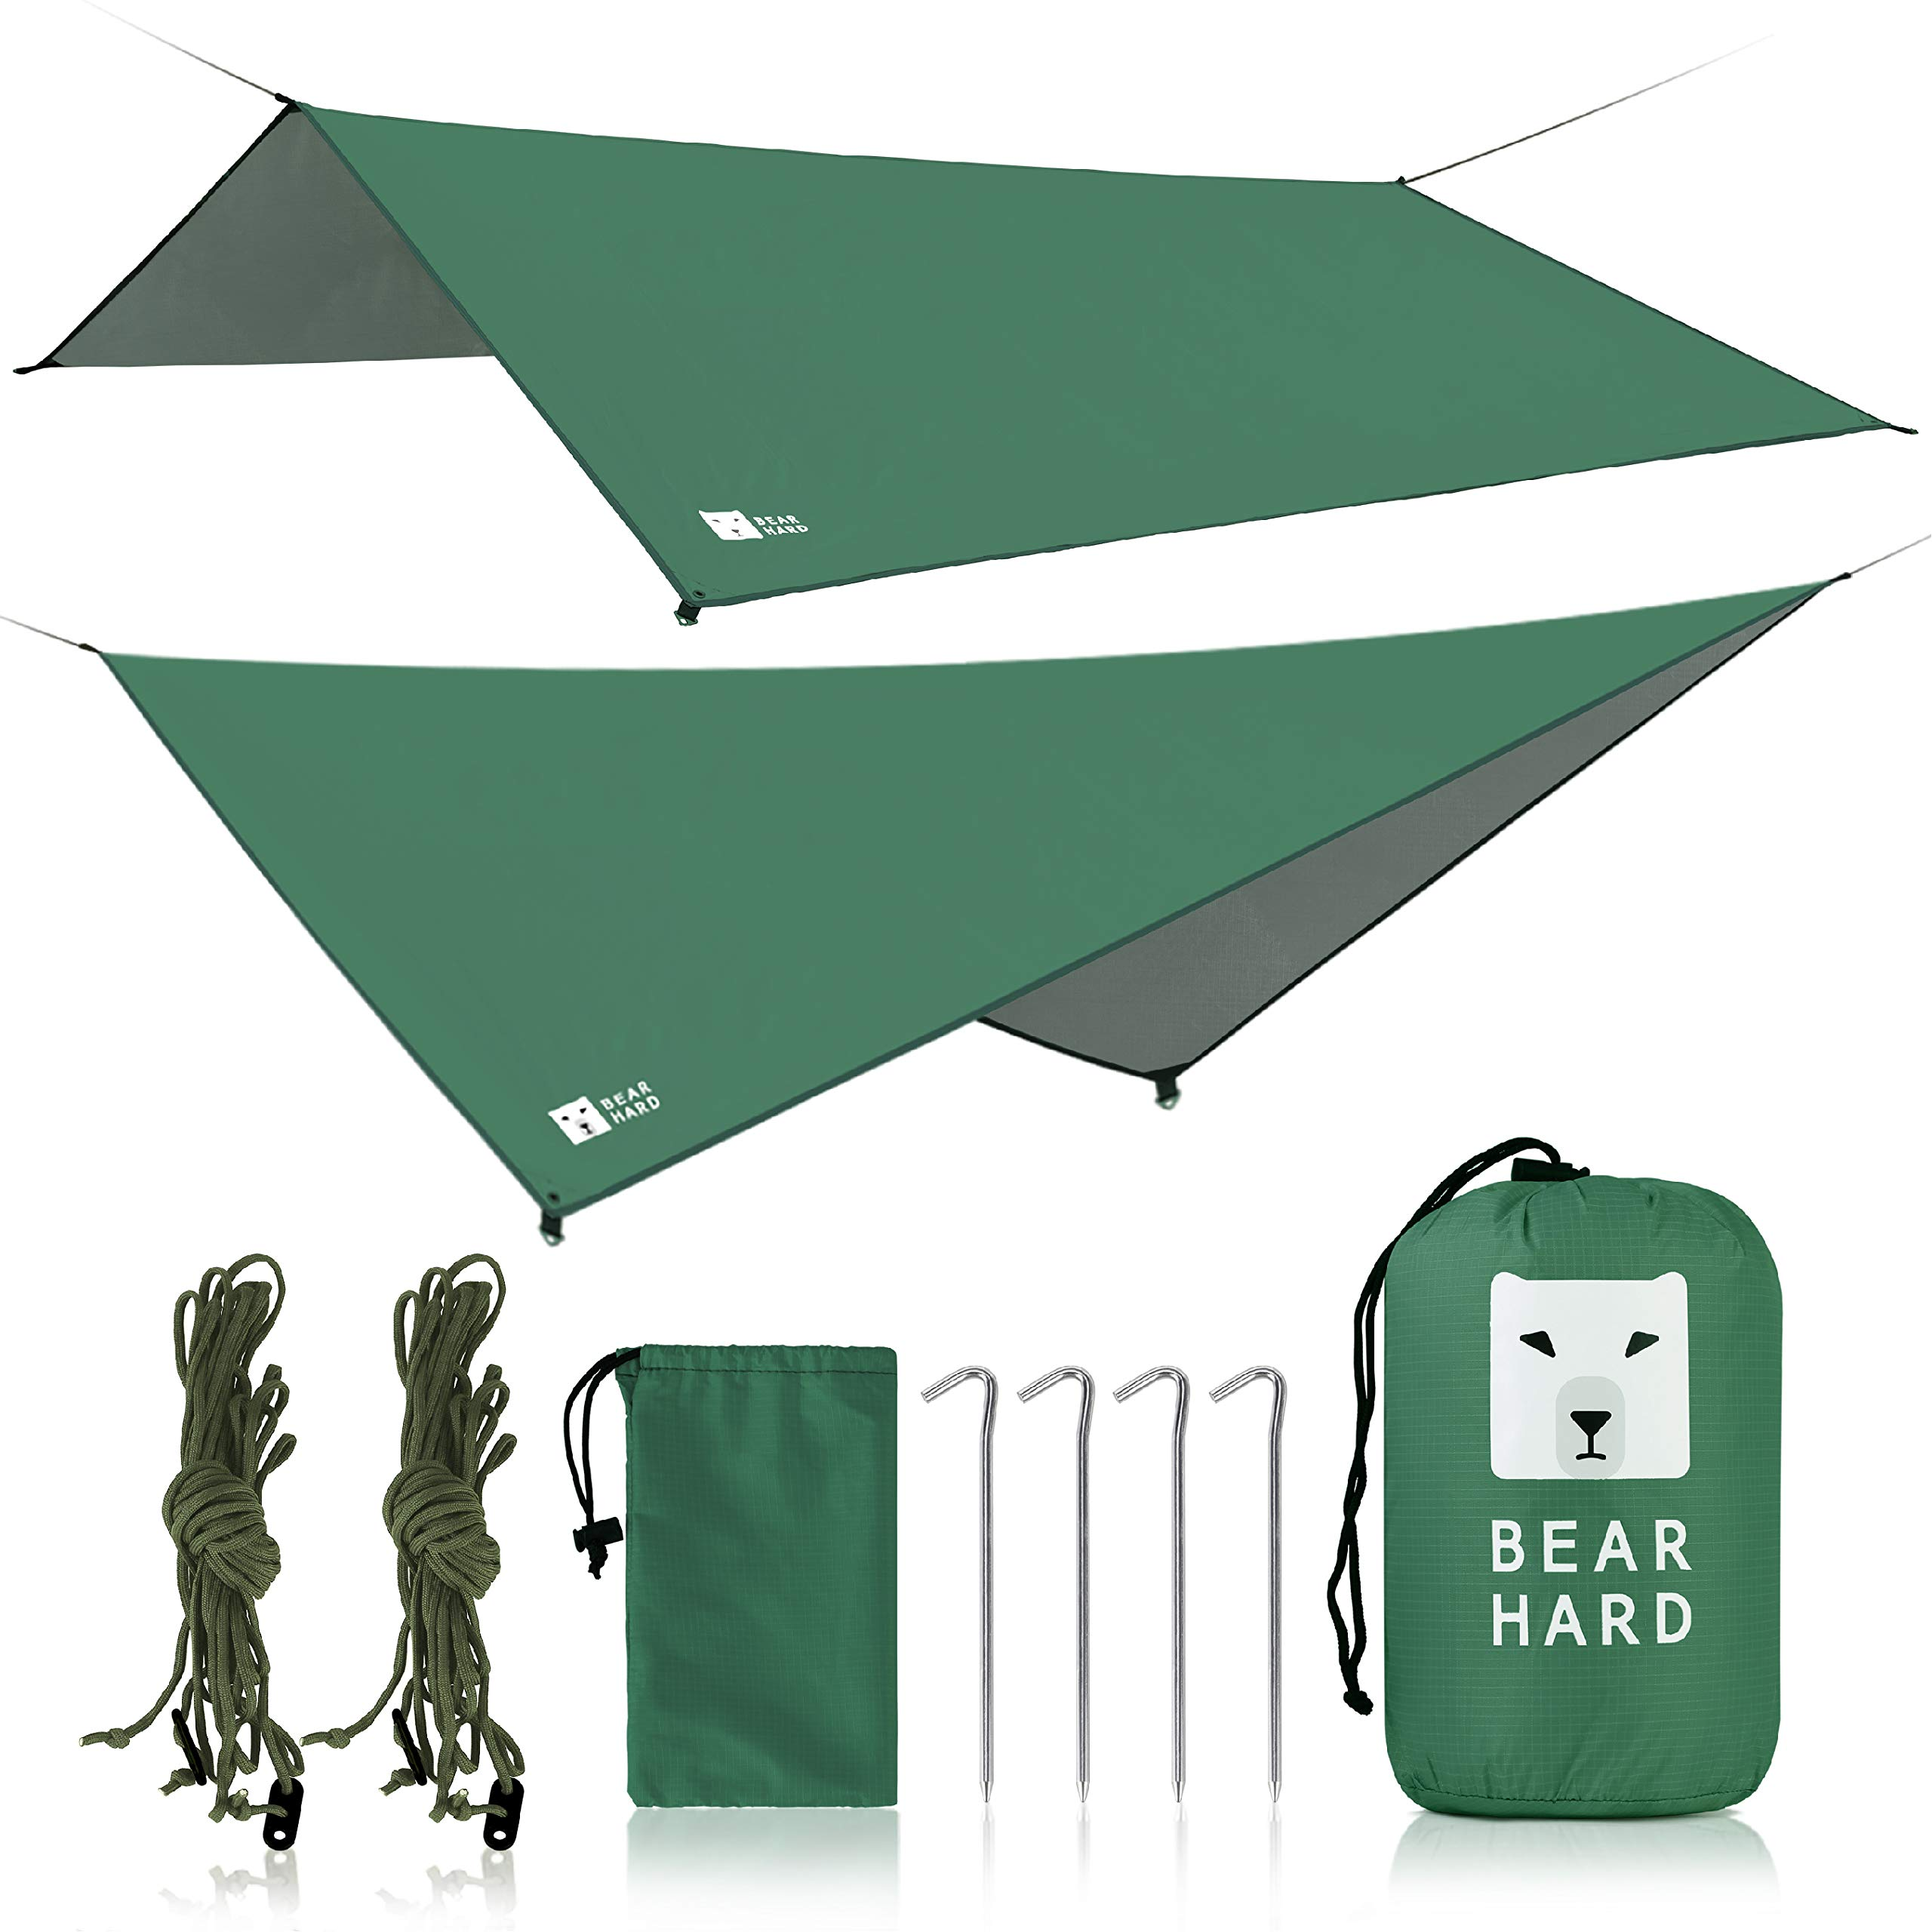 Bearhard Hammock Rain Fly Camping Tarp 10ft x 10ft/10ft x 12ft Set Up Easily and Include 6 Ropes and 4 Stakes Multicolor Lightweight Waterproof Tent Tarp Perfect for Camping, Hiking, Picnic by Bearhard